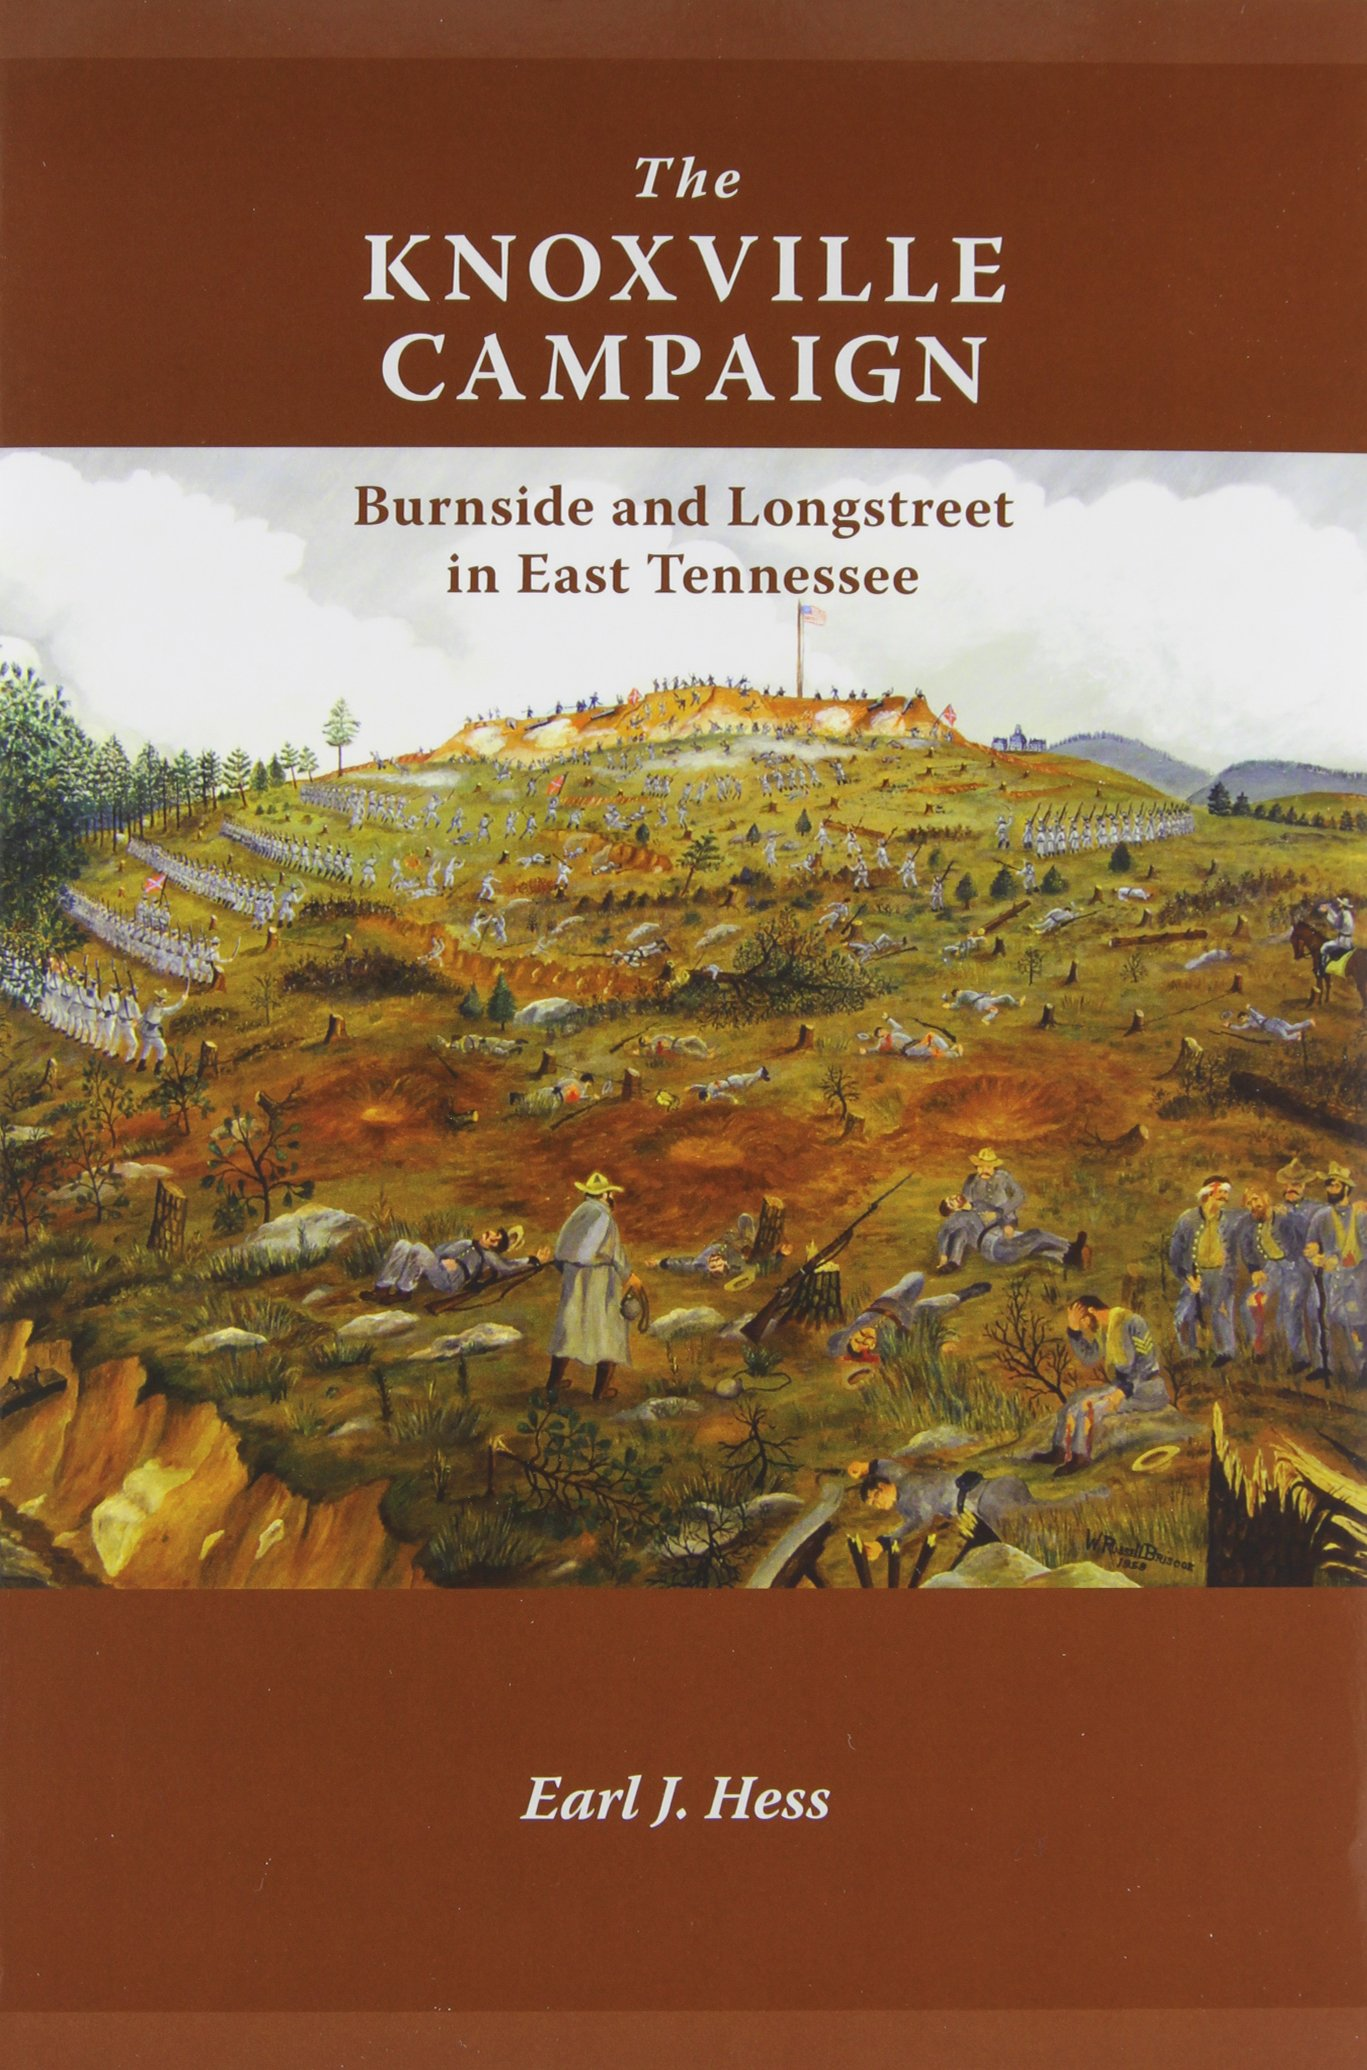 Earl J. Hess, The Knoxville Campaign: Burnside and Longstreet in East Tennessee-click the link below for more information about this book